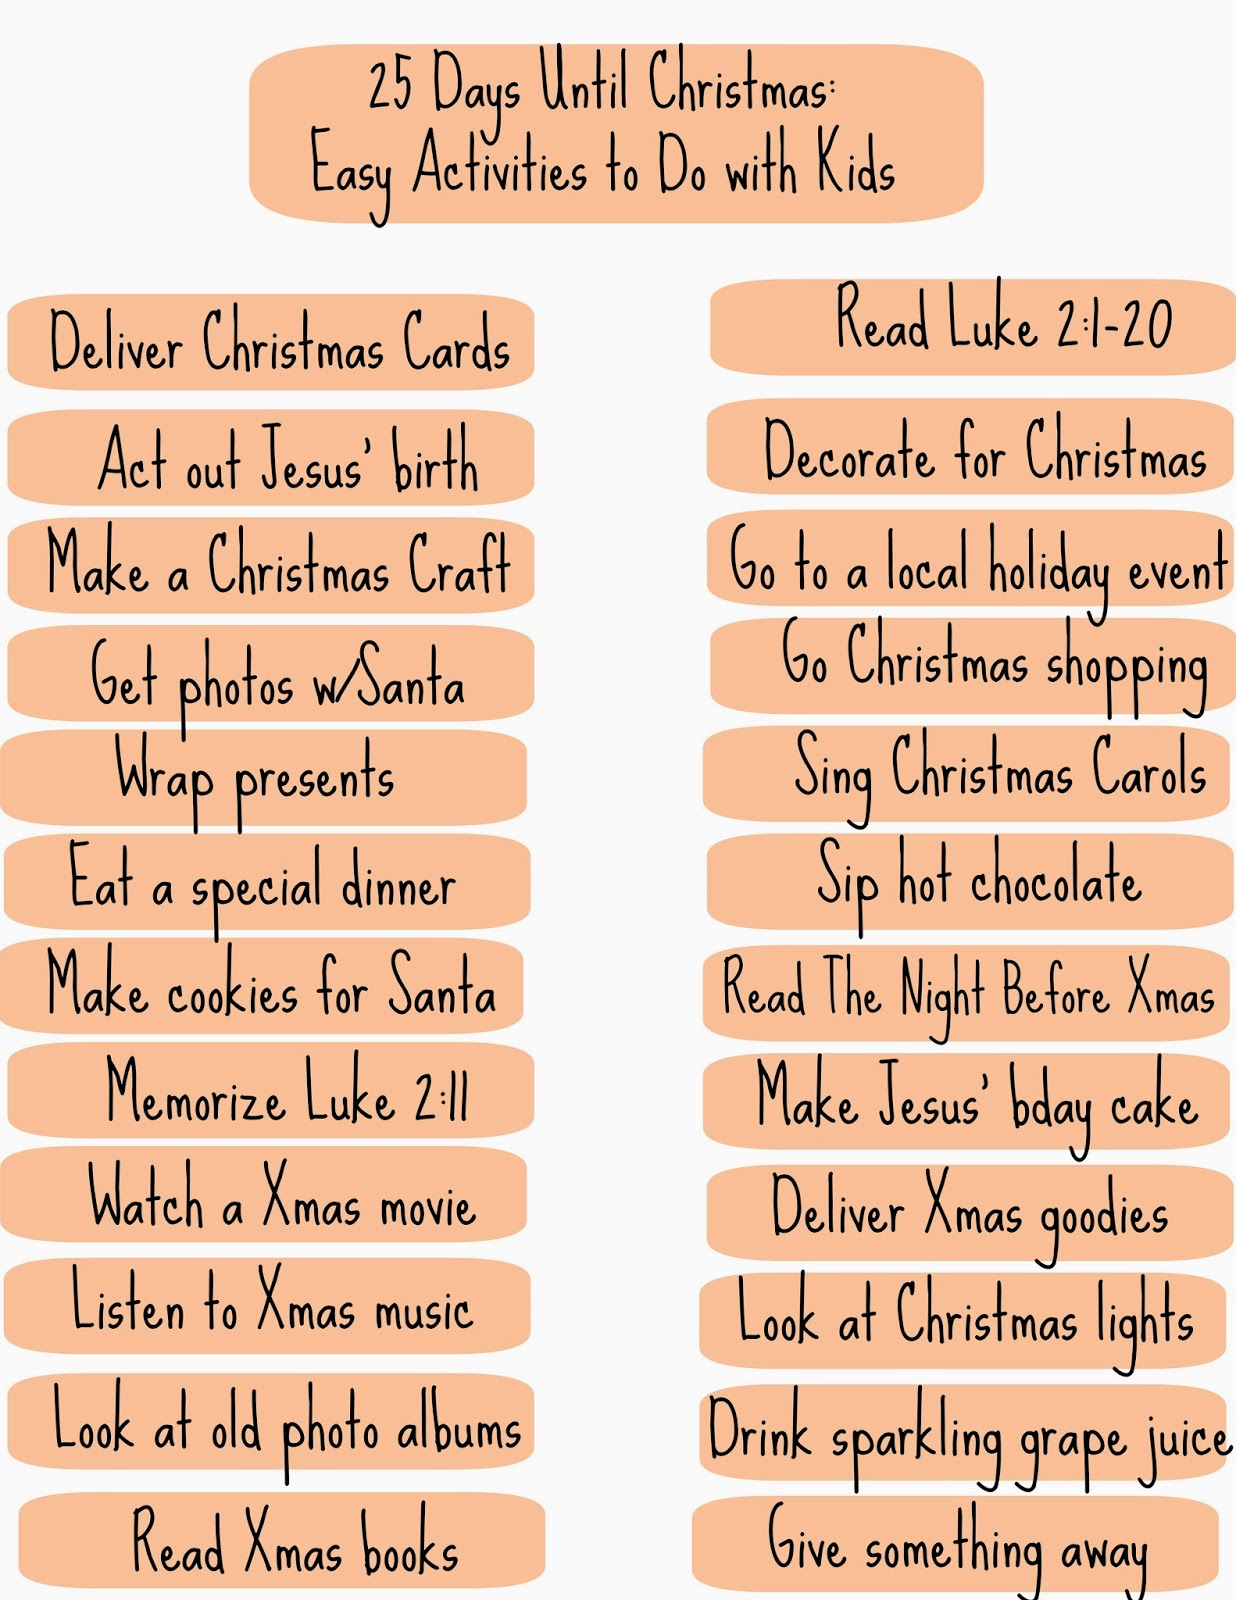 25 Days Until Christmas An Easy Way To Celebrate With